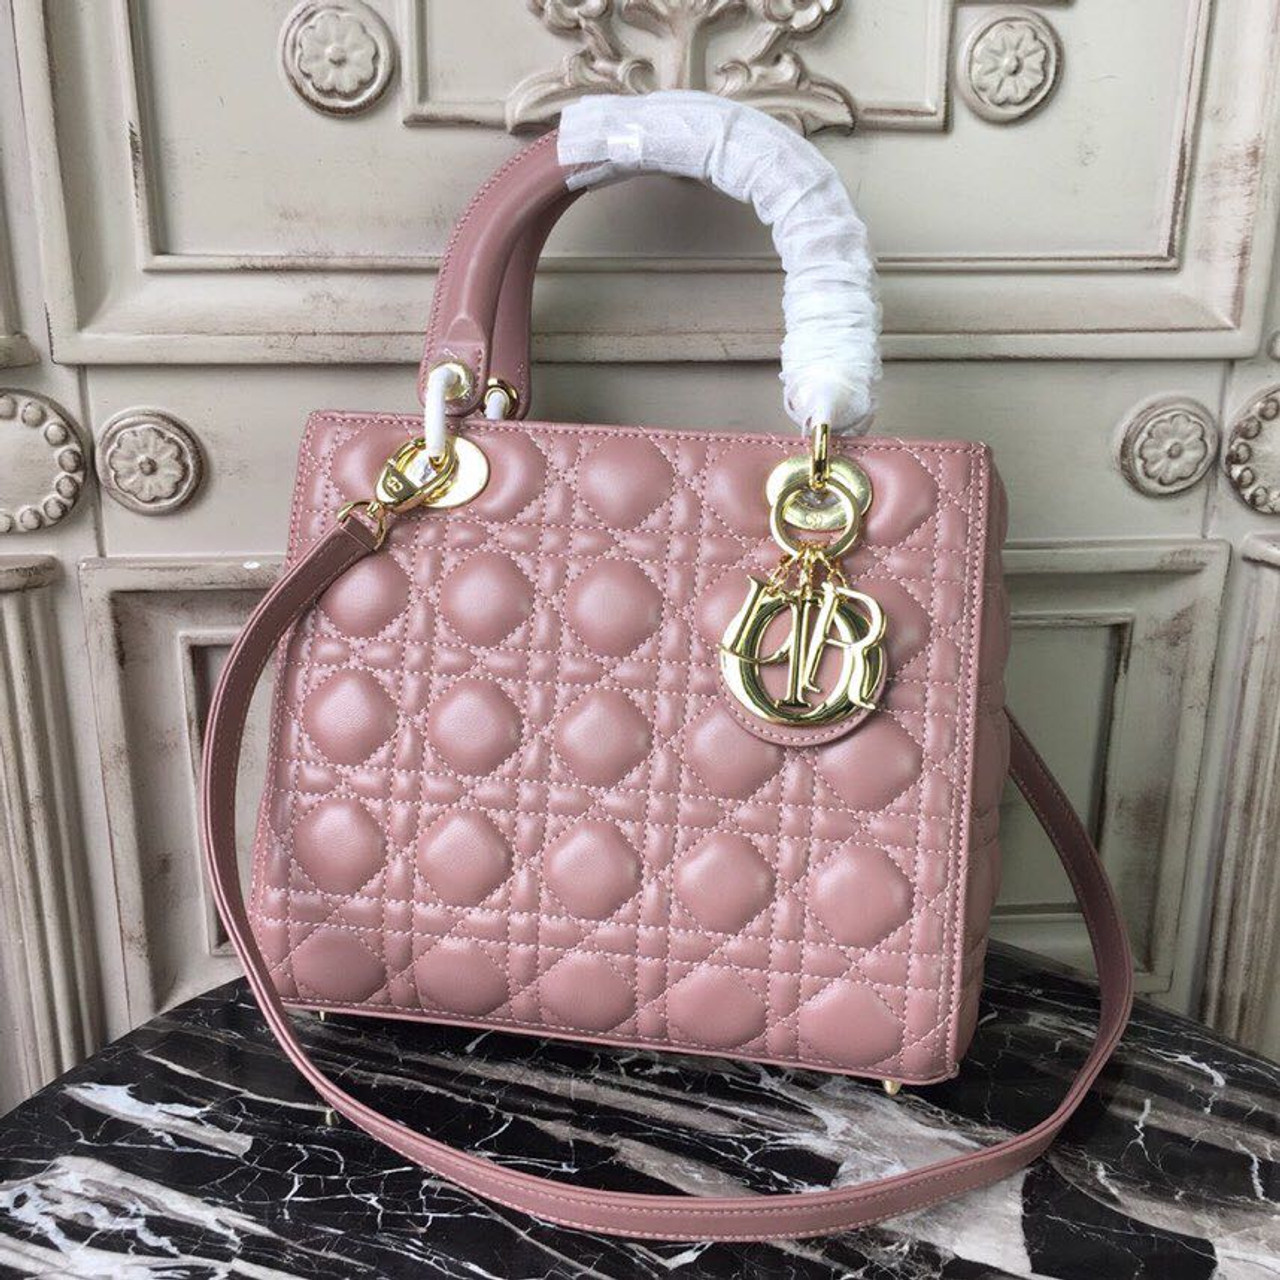 25090504ec Christian Dior Lady Dior Bag 24cm Gold Hardware Lambskin Leather  Spring/Summer 2019 Collection, Dusty Pink